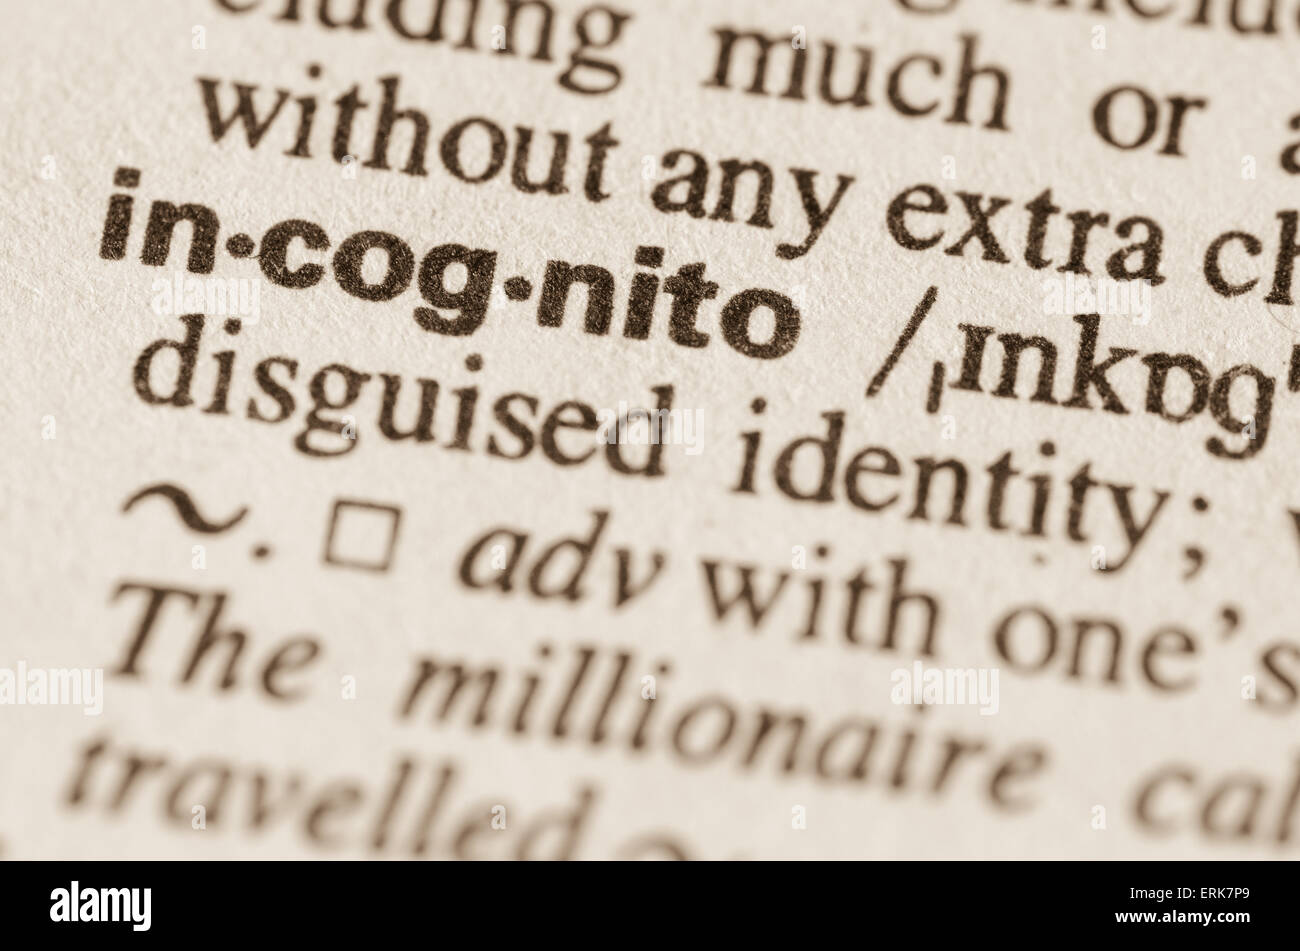 definition of word incognito in dictionary stock photo: 83401761 - alamy